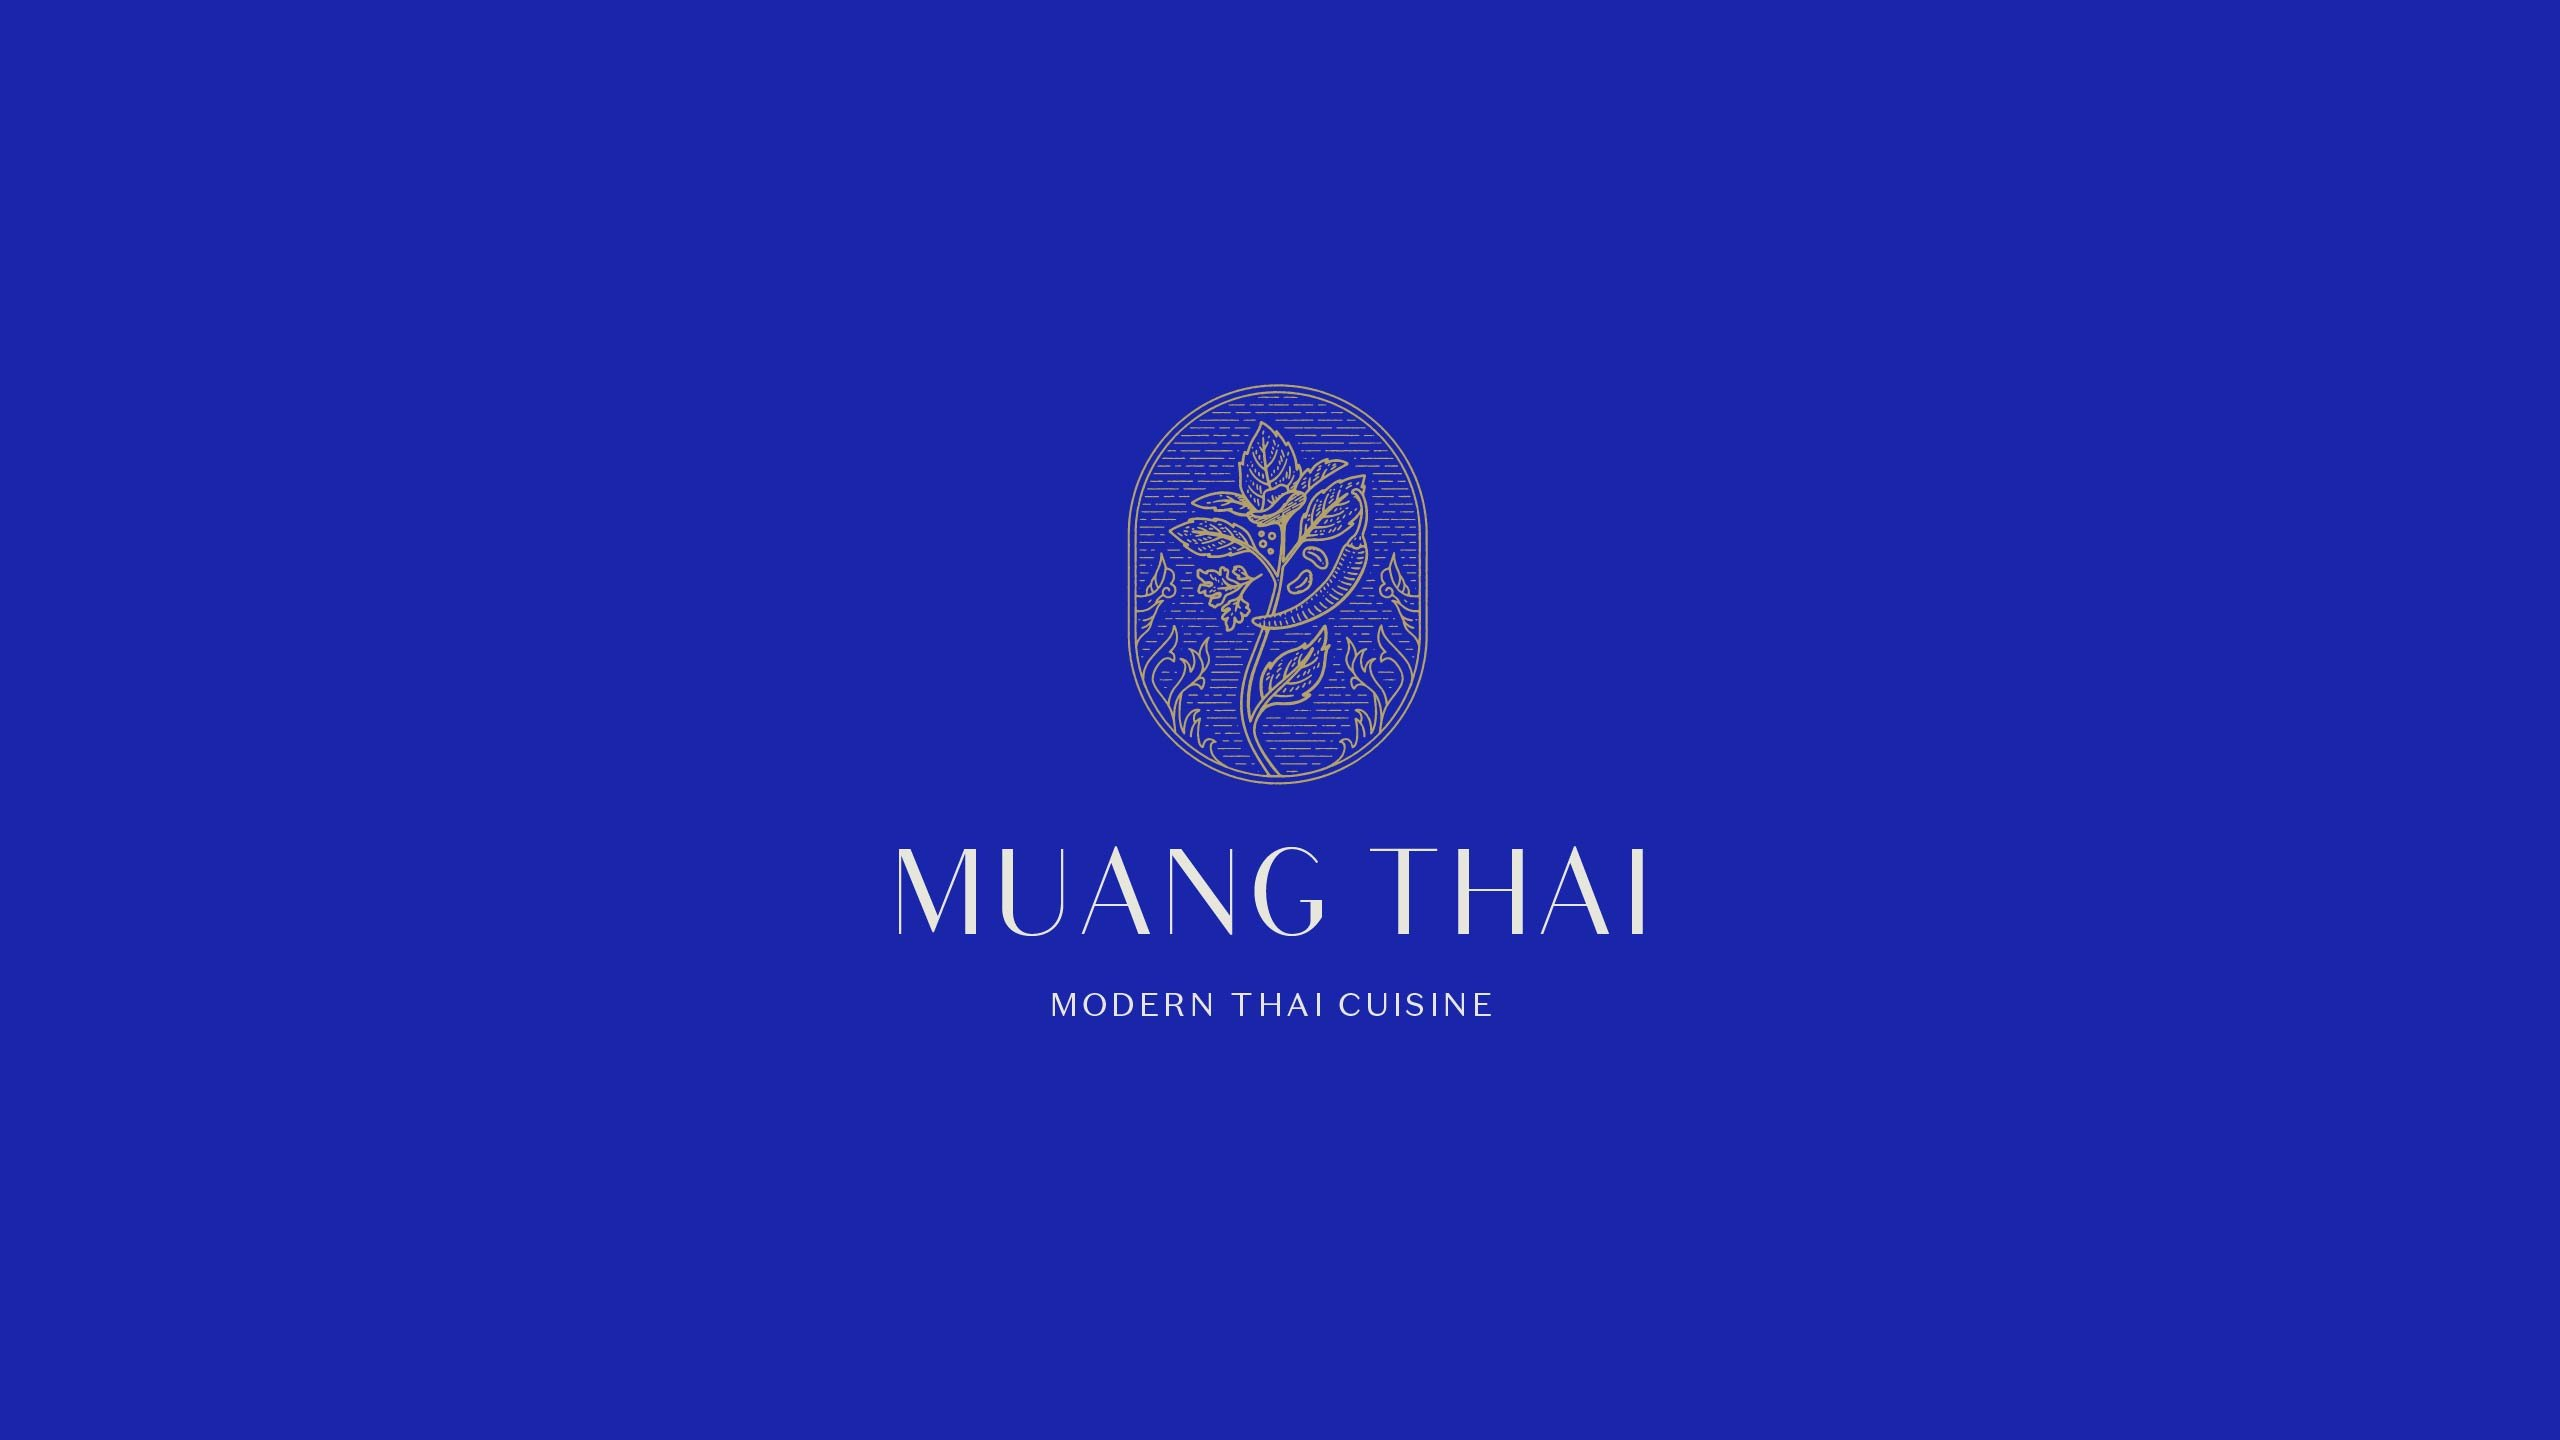 Spice-inspired logo for Thai restaurant Muang Thai